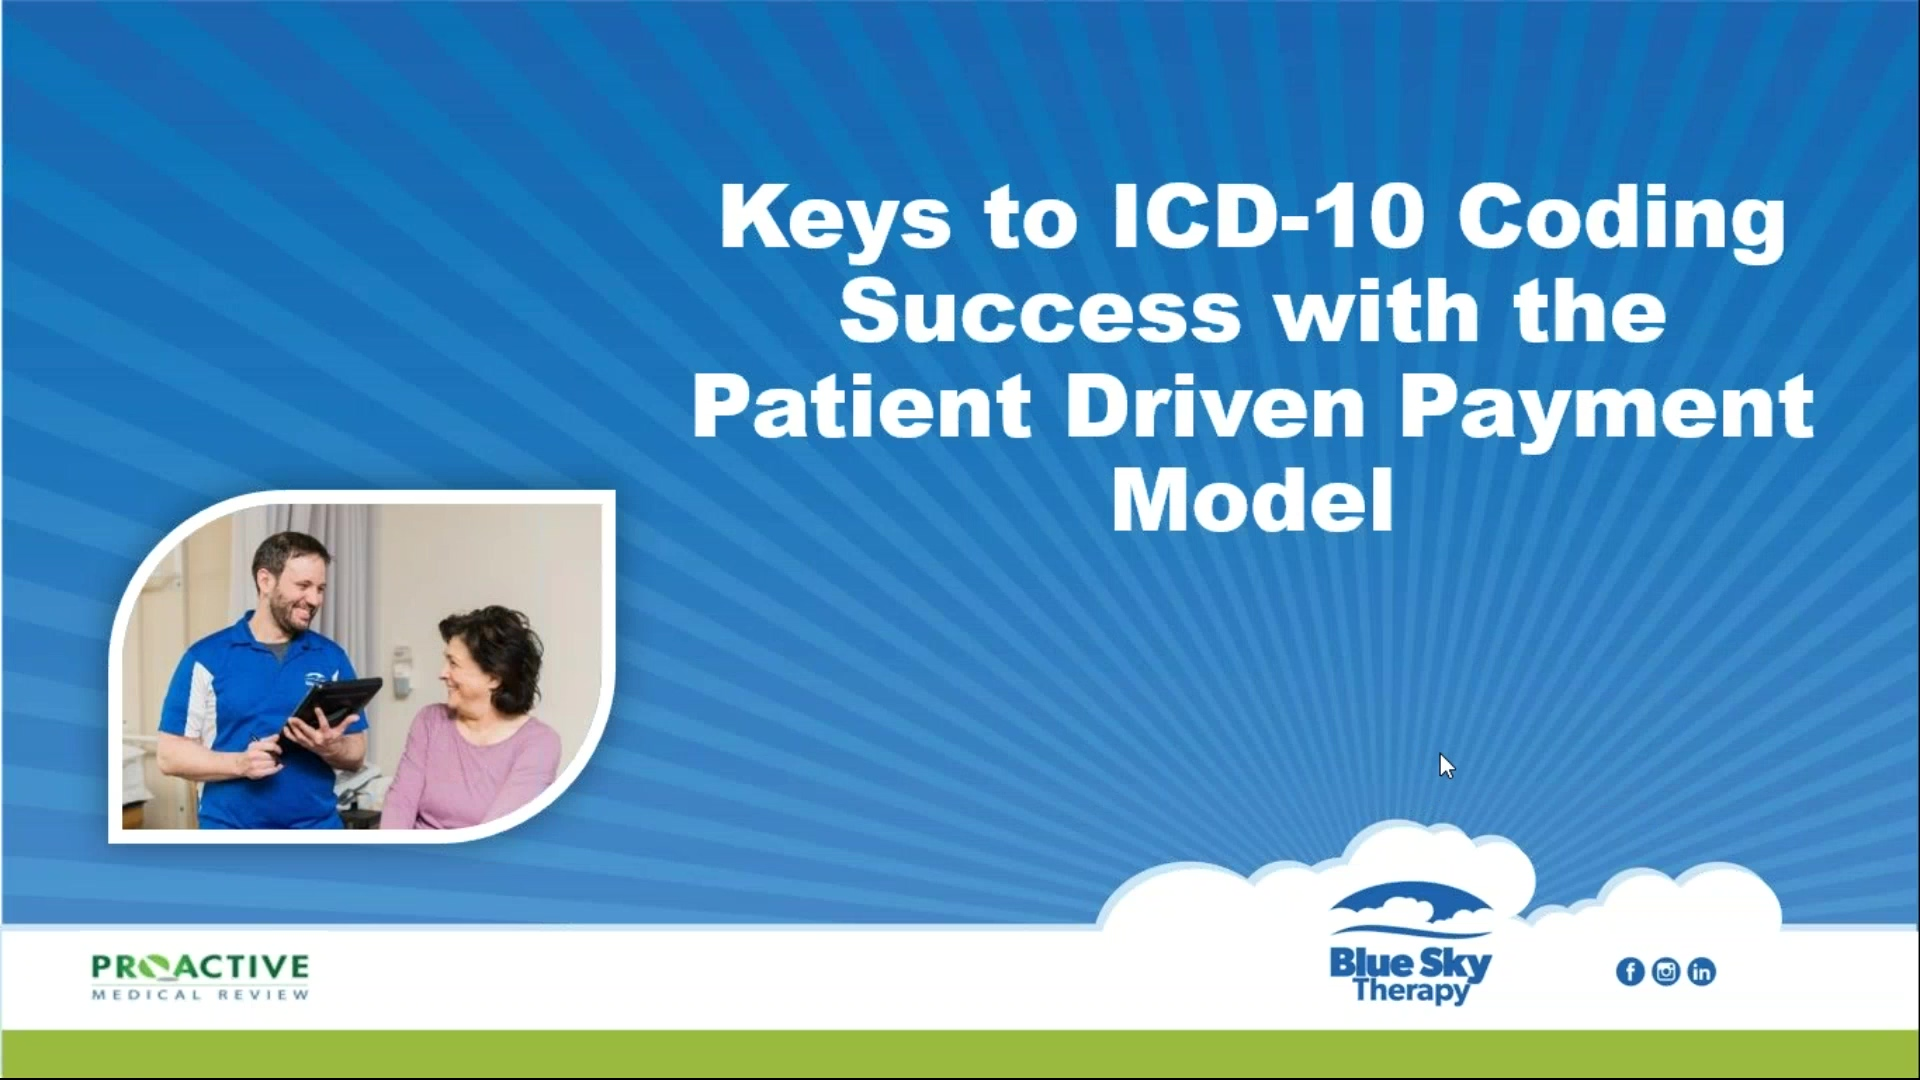 2019-08-07 12.02 Keys to ICD-10 Coding Success Under the Patient Driven Payment Model